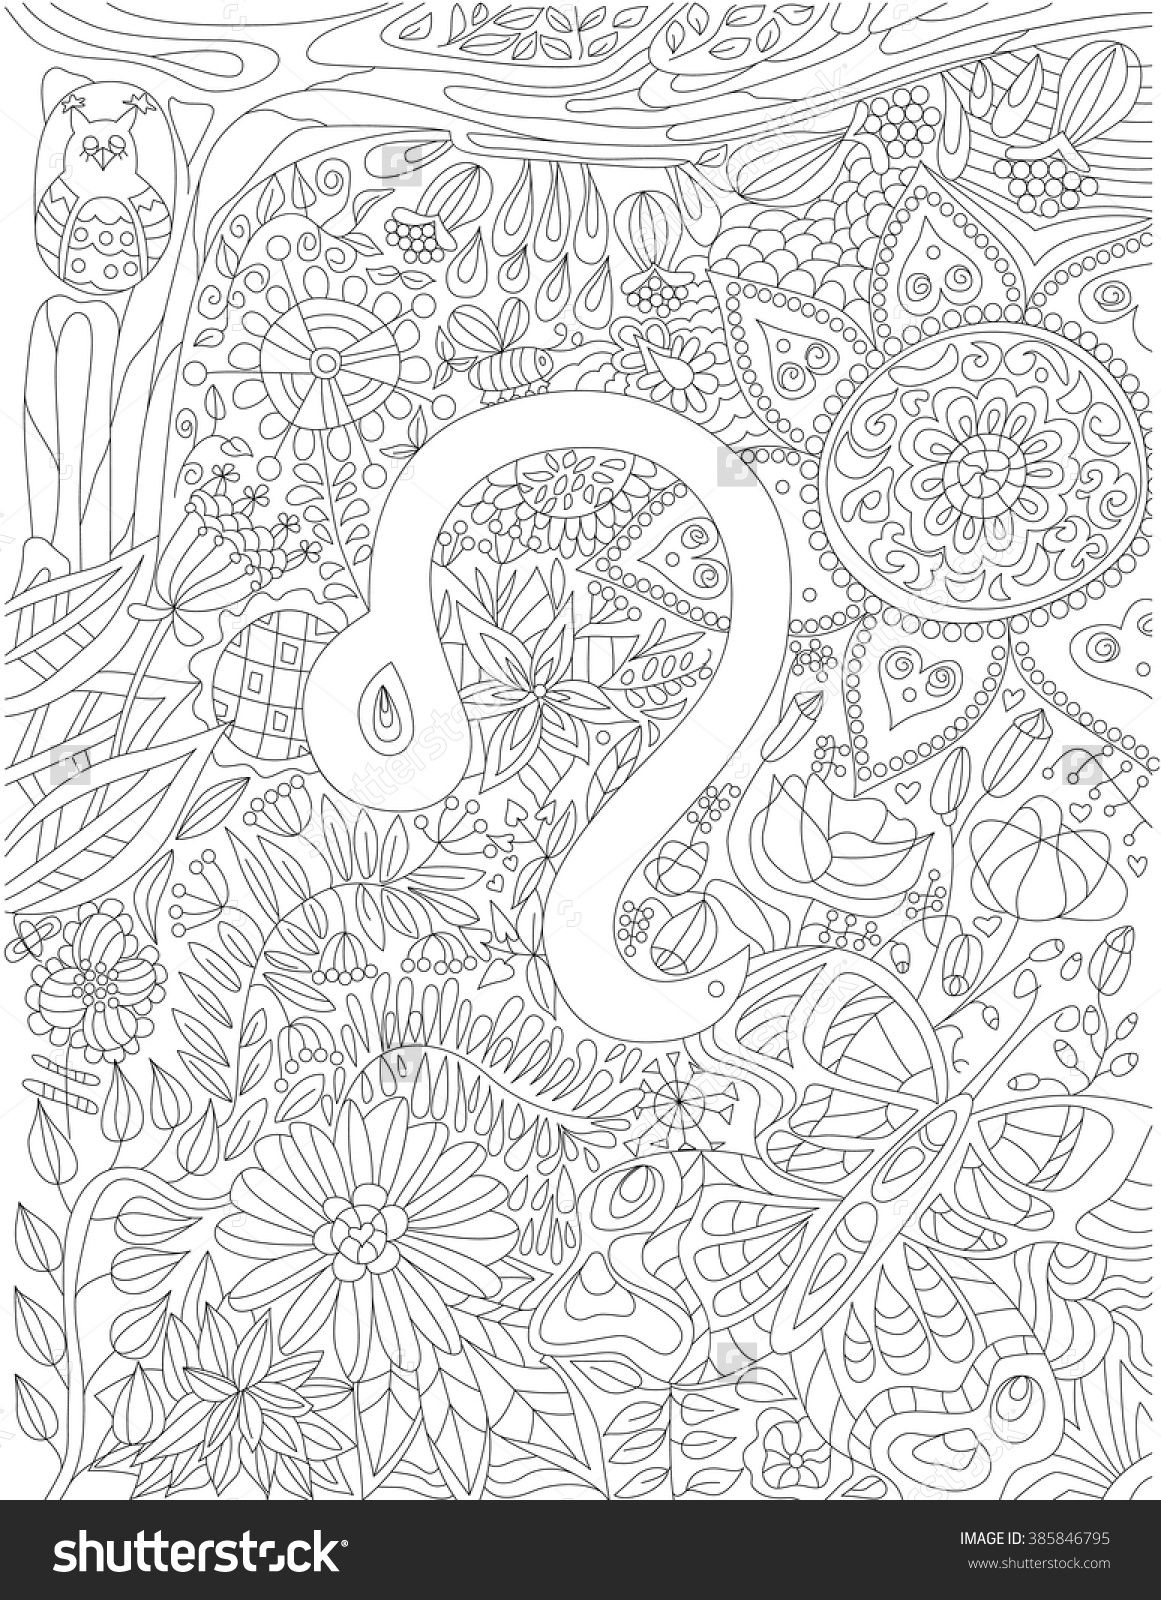 Pin On Zodiac Signs Colouring Coloring Pages